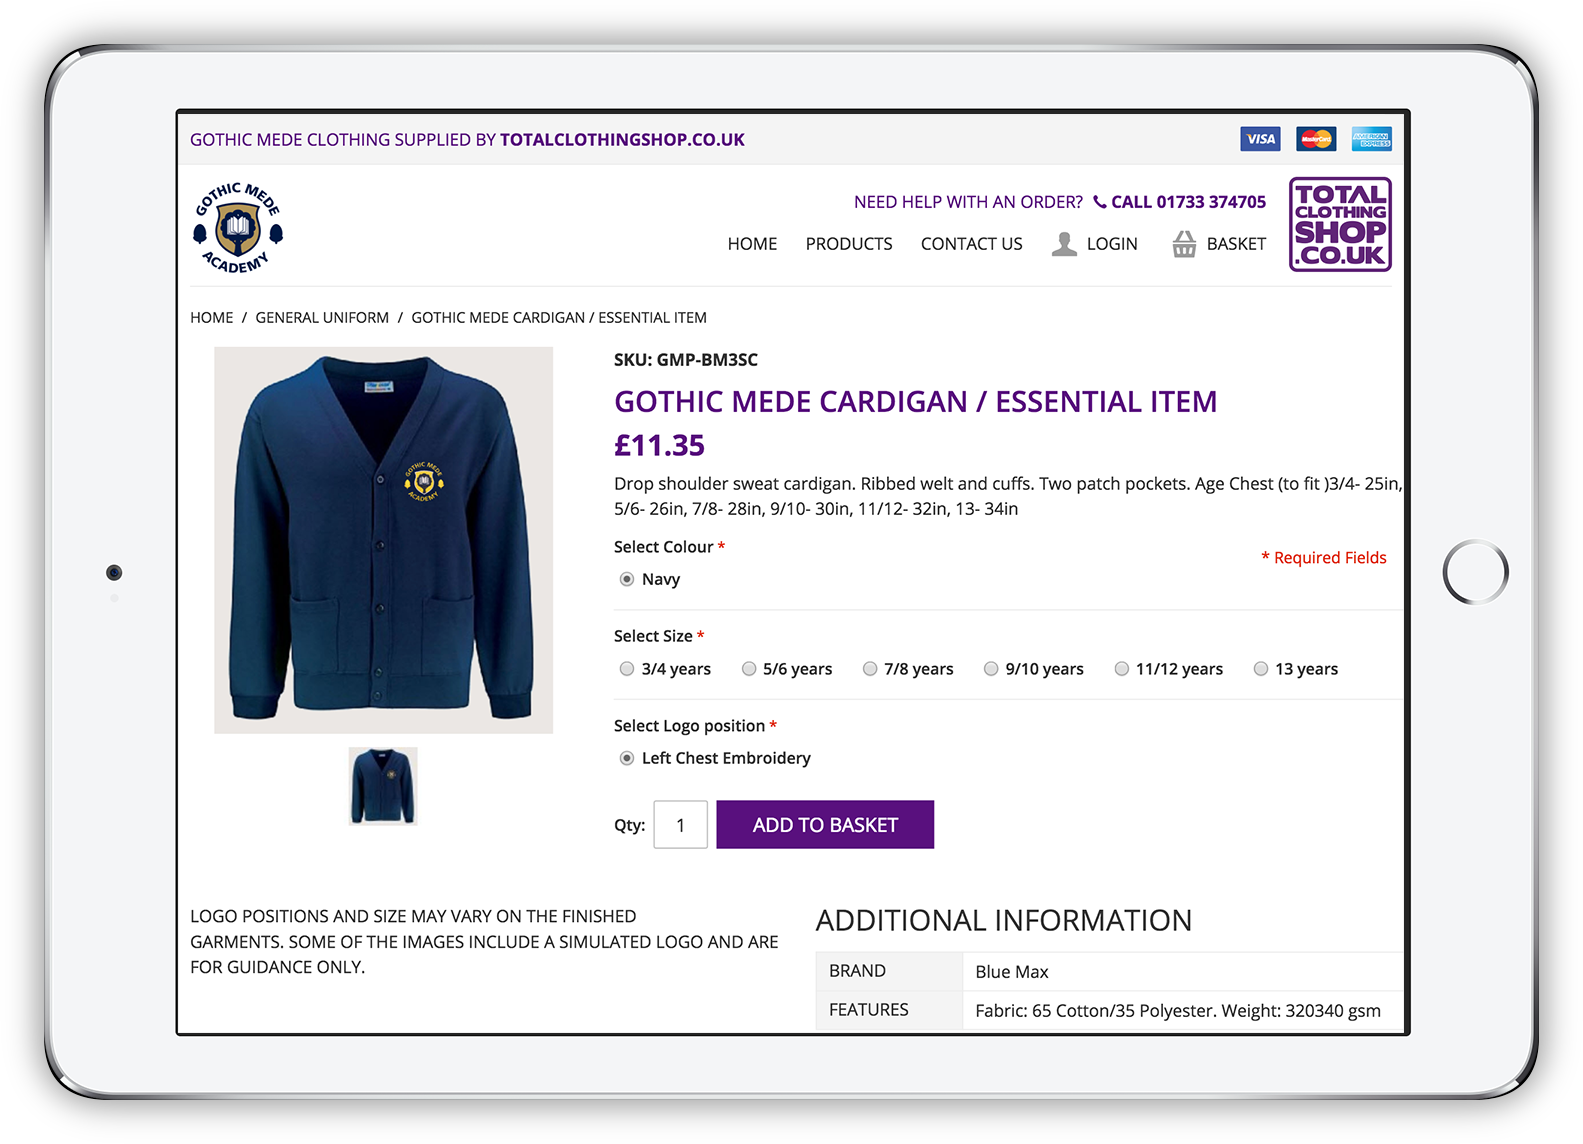 Total Clothing Shop Product Page